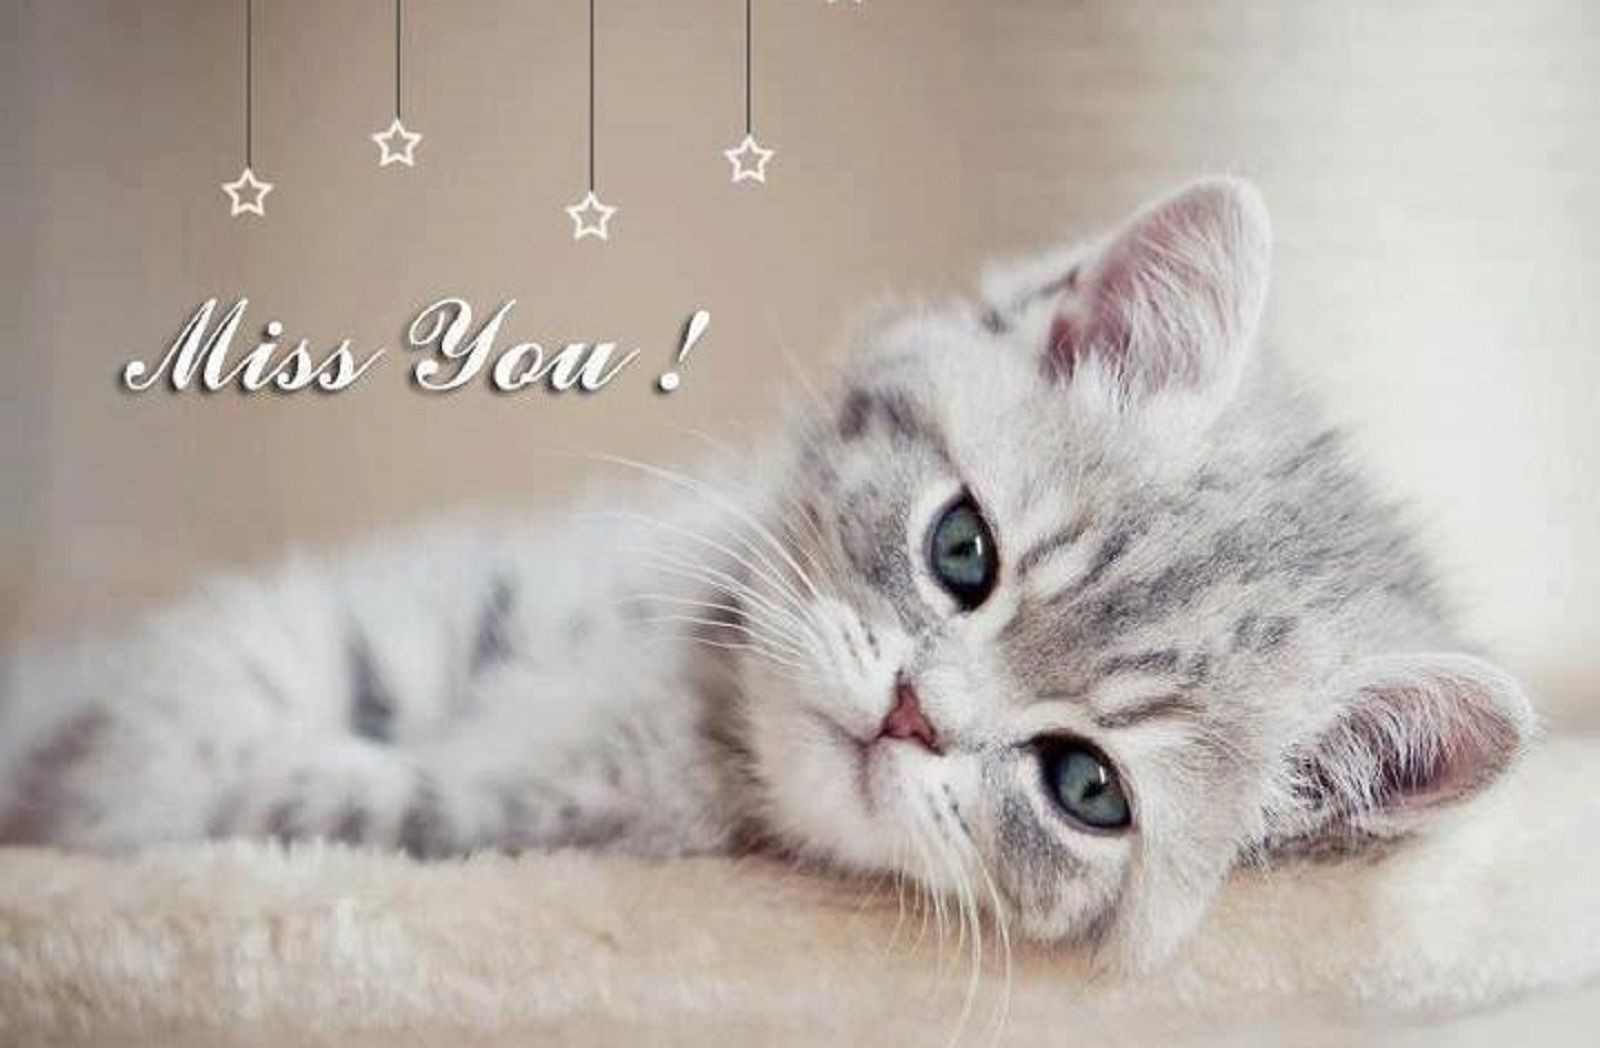 The Best and Latest Miss You Images on the Internet - Free